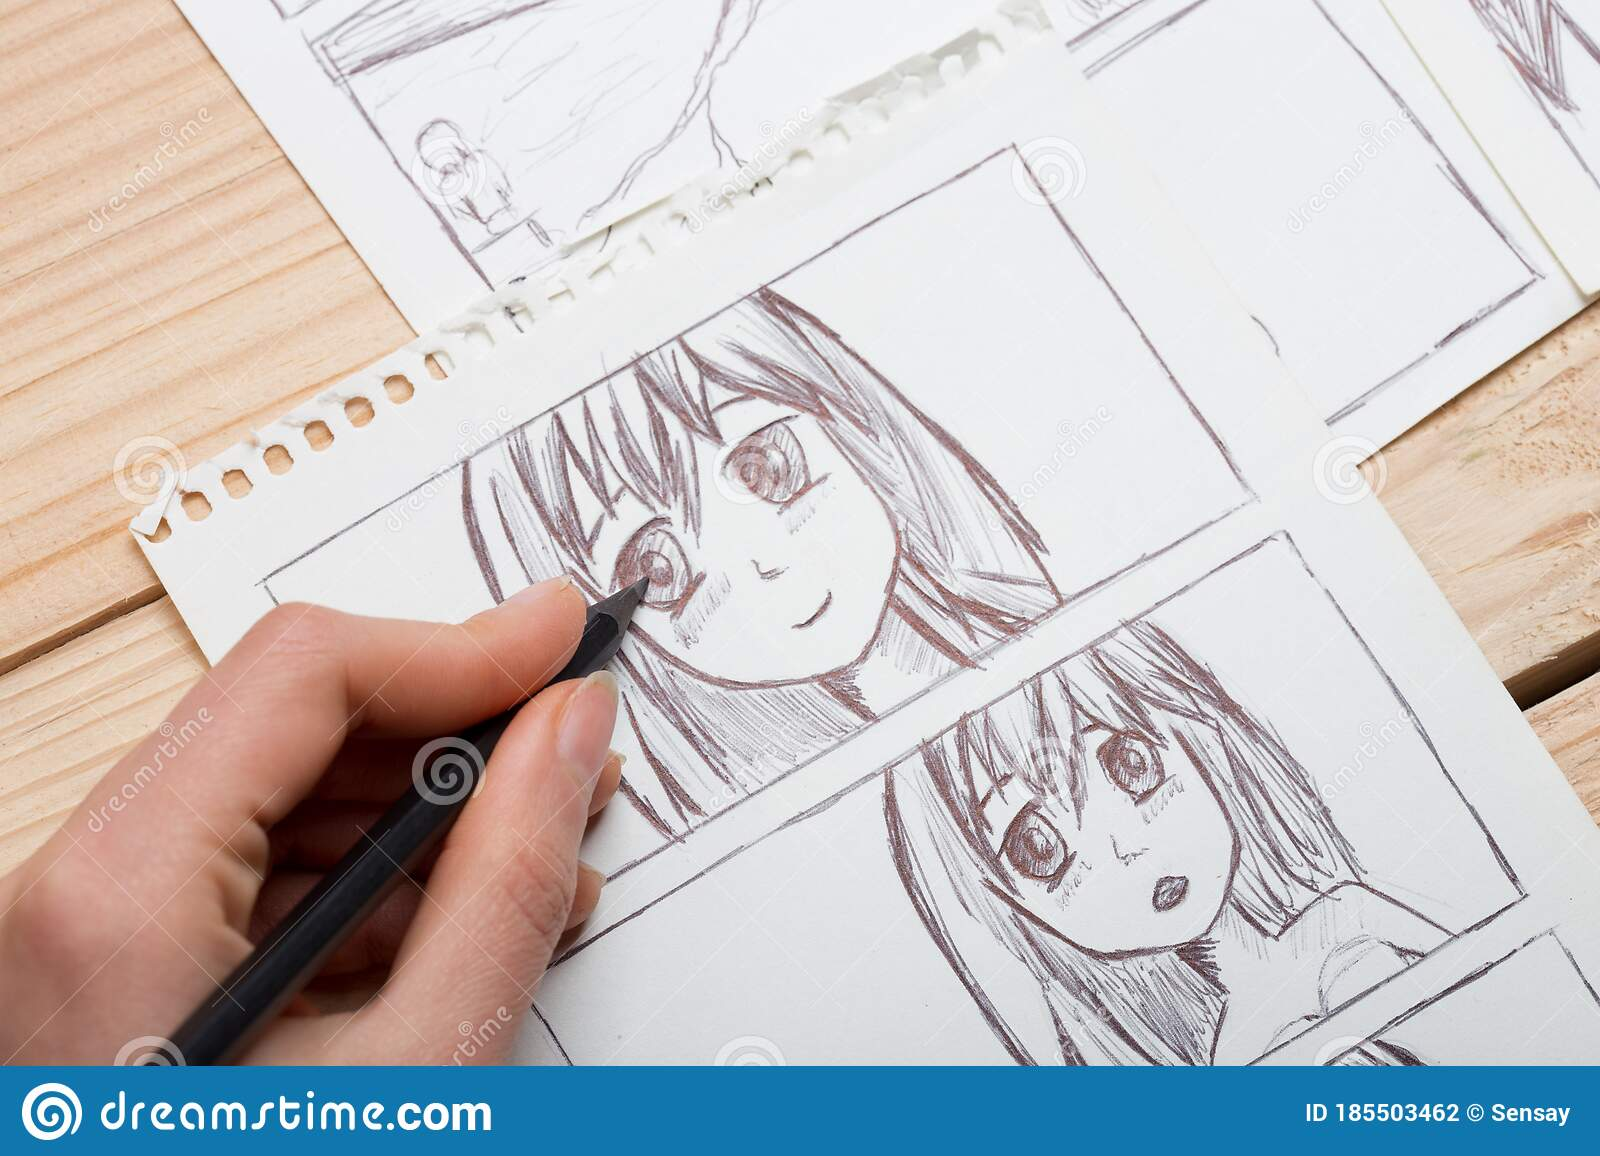 20 795 anime photos free royalty free stock photos from dreamstime